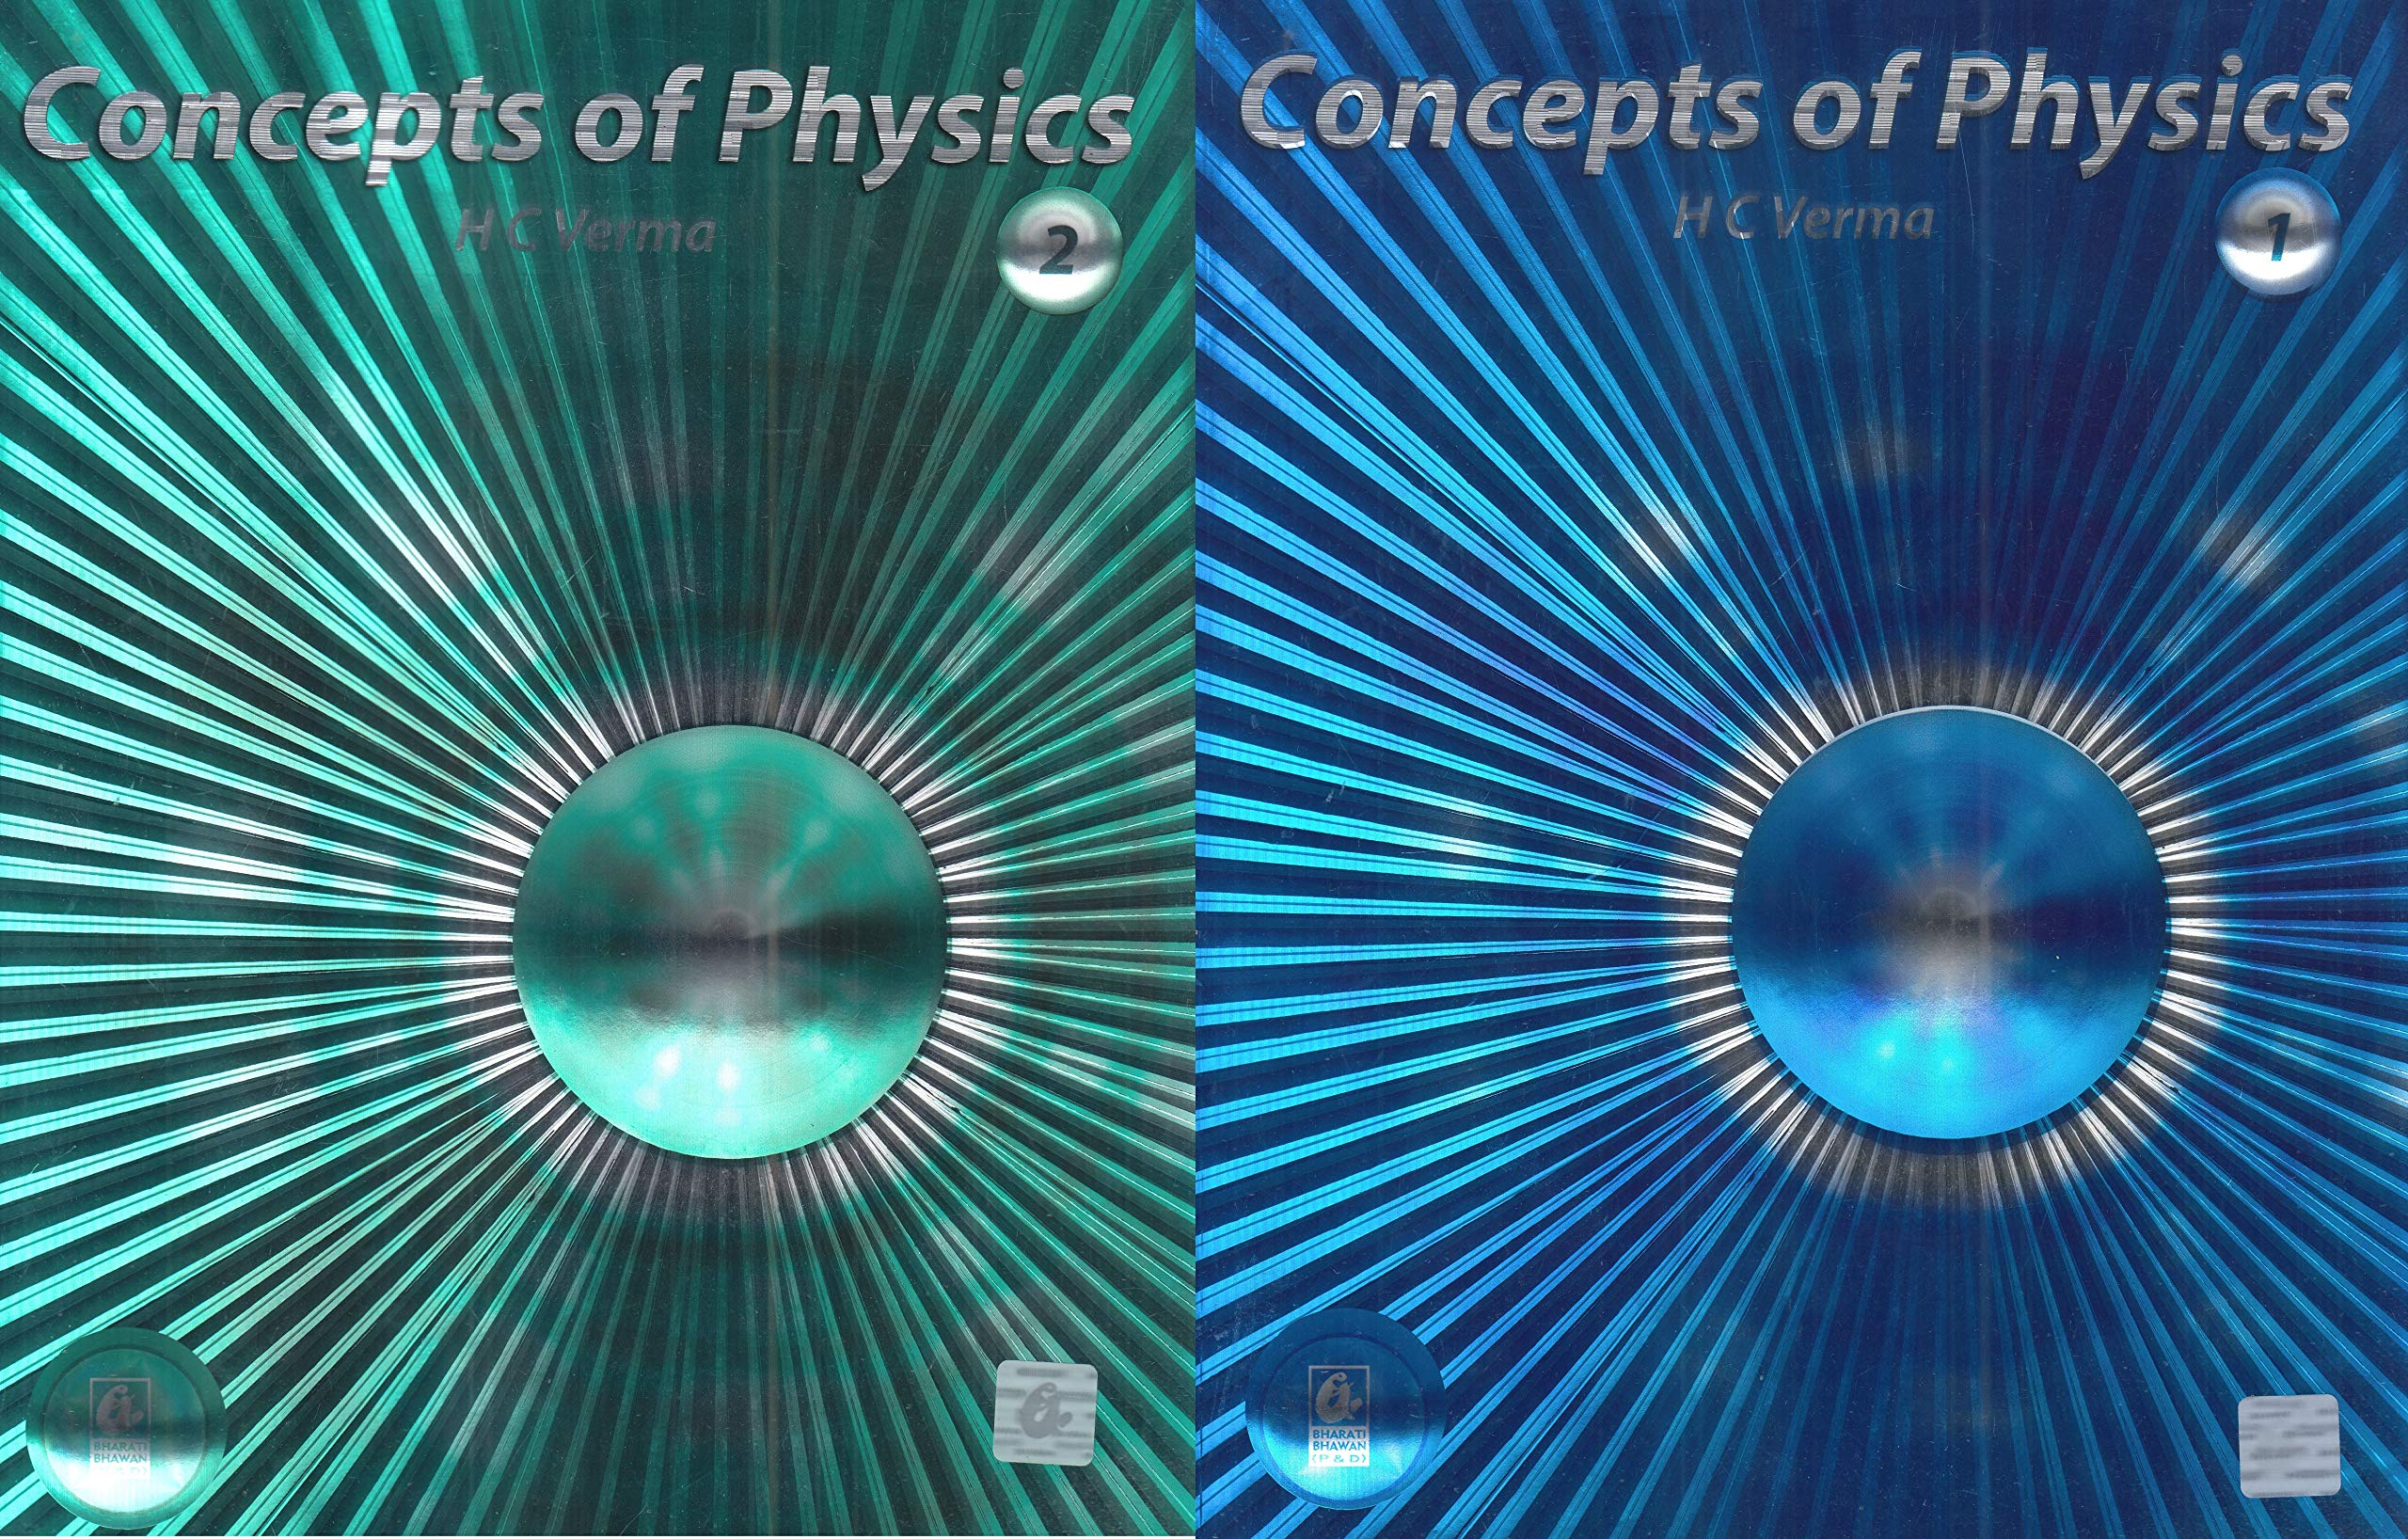 Concept of Physics (2018-2019) Session (Set of 2 Volume) Paperback – 1 January 2011